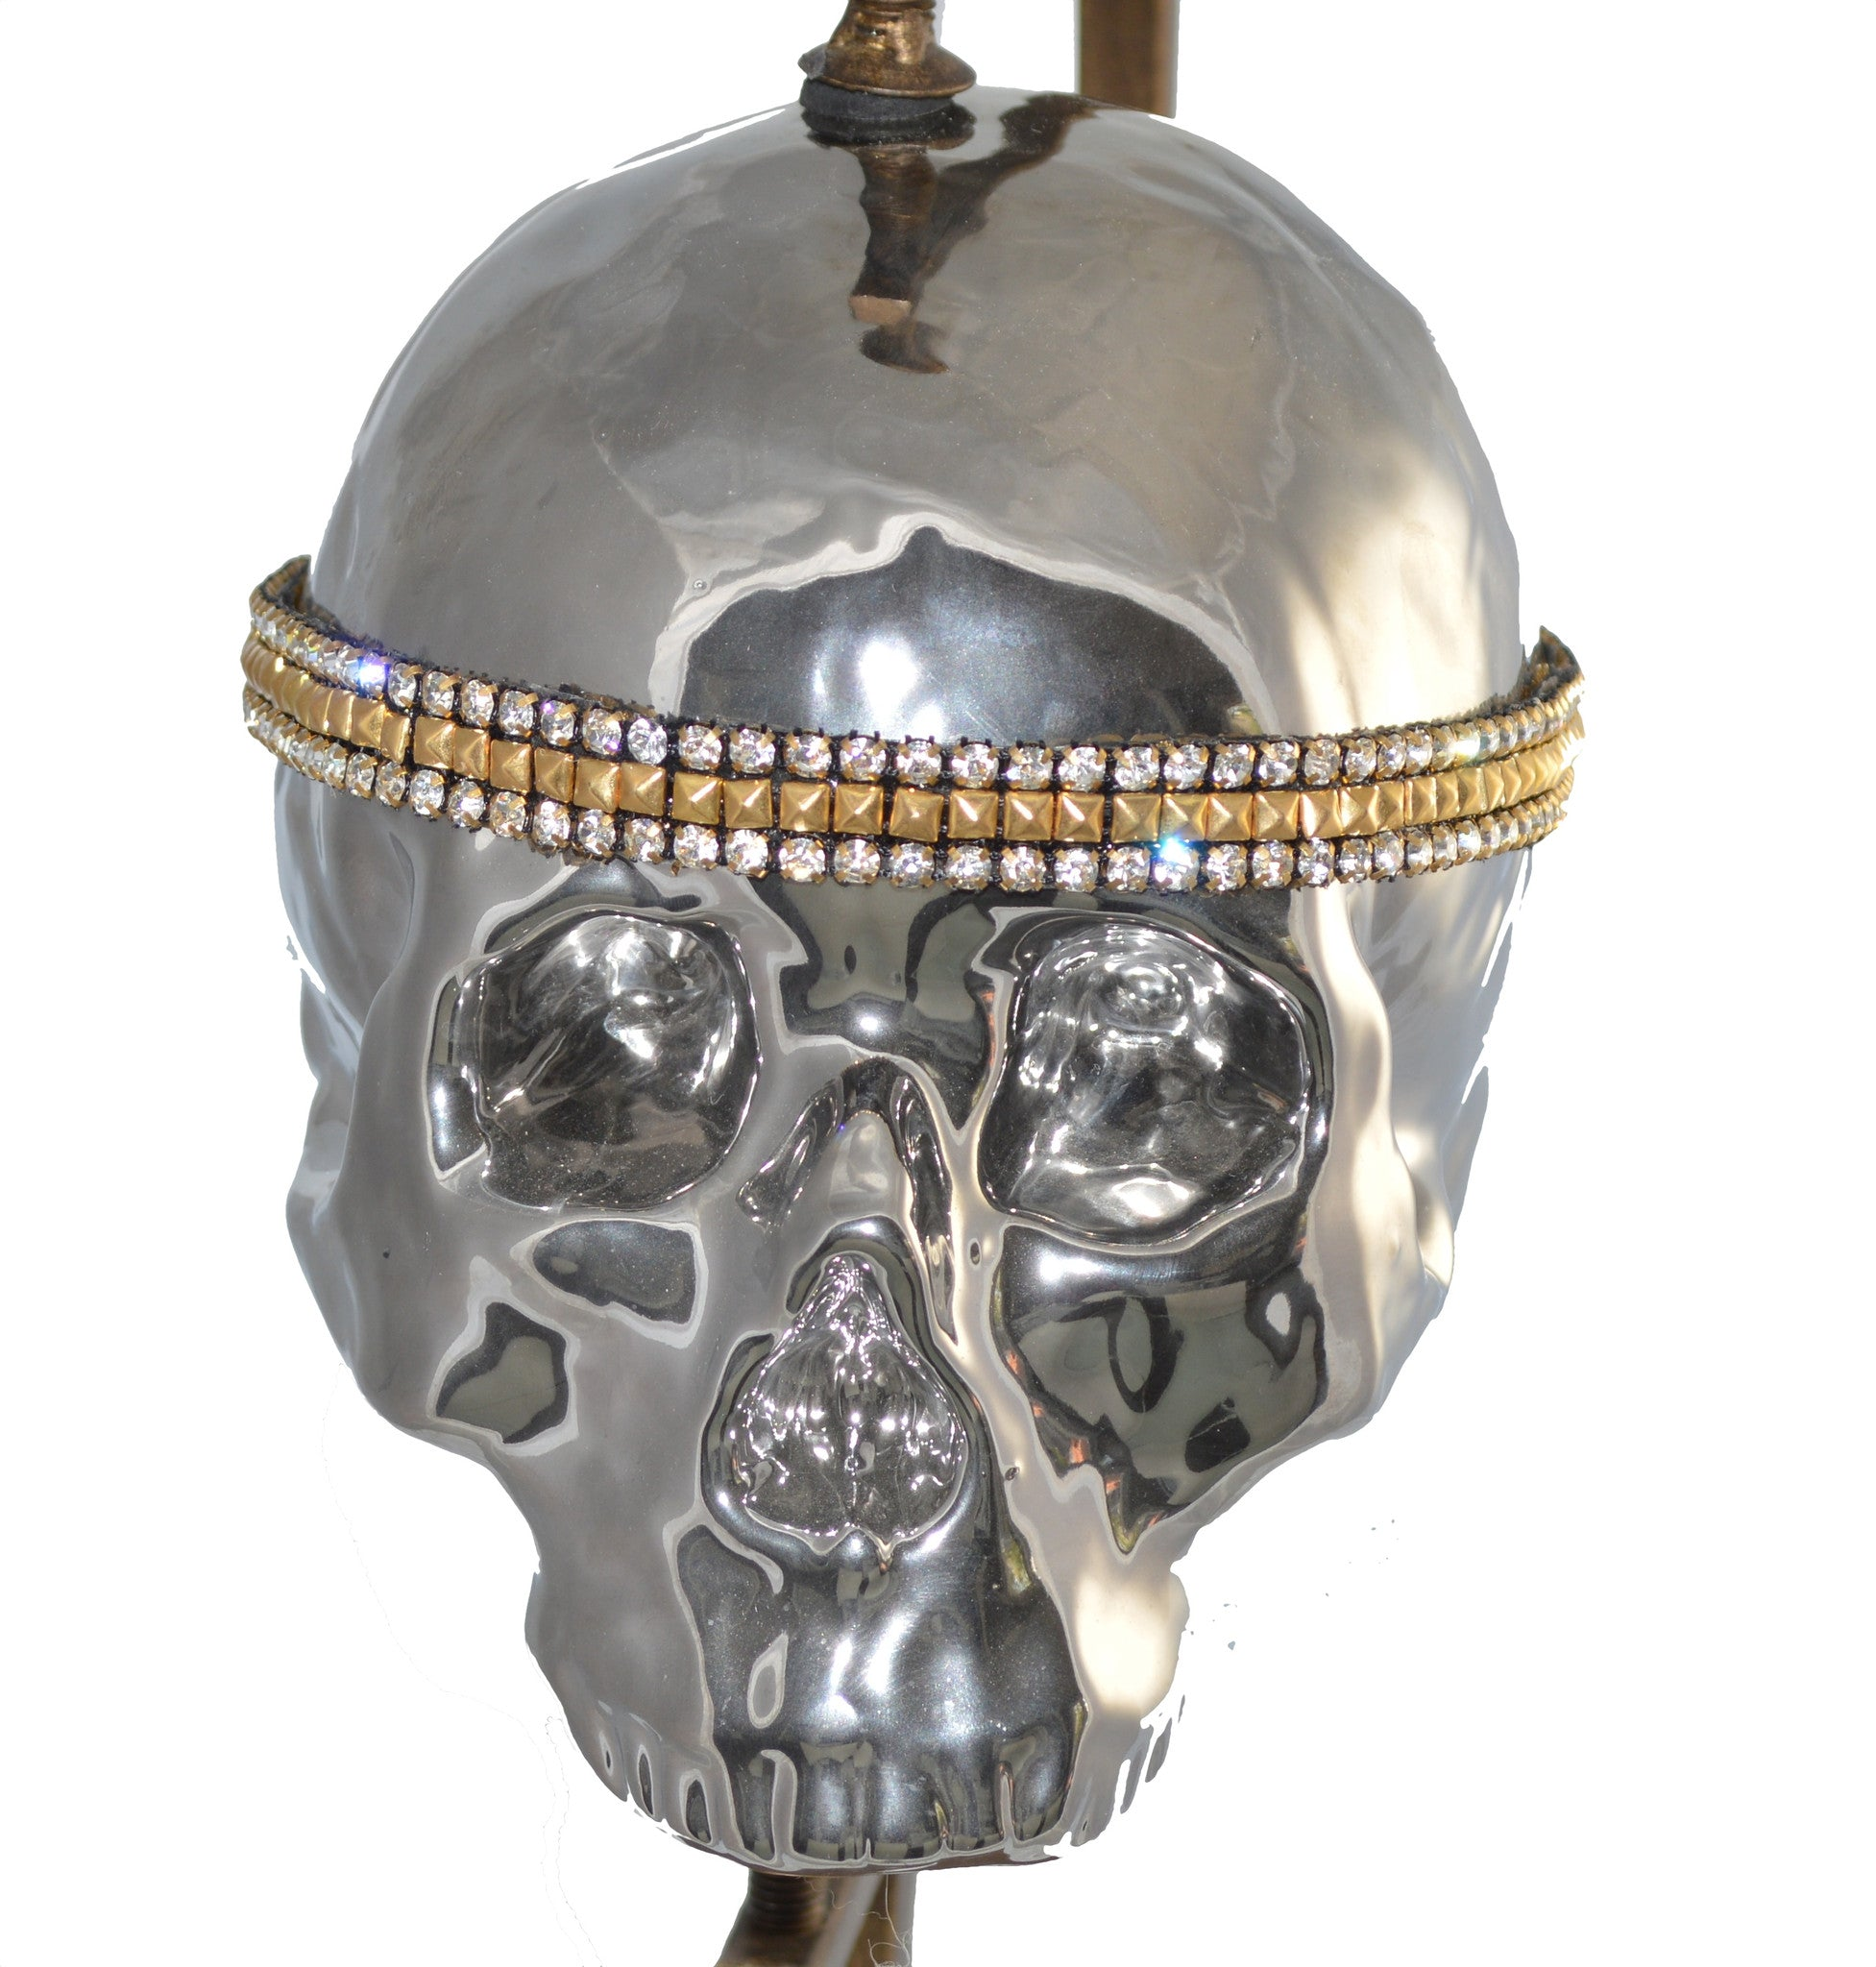 The Mojave Headpiece